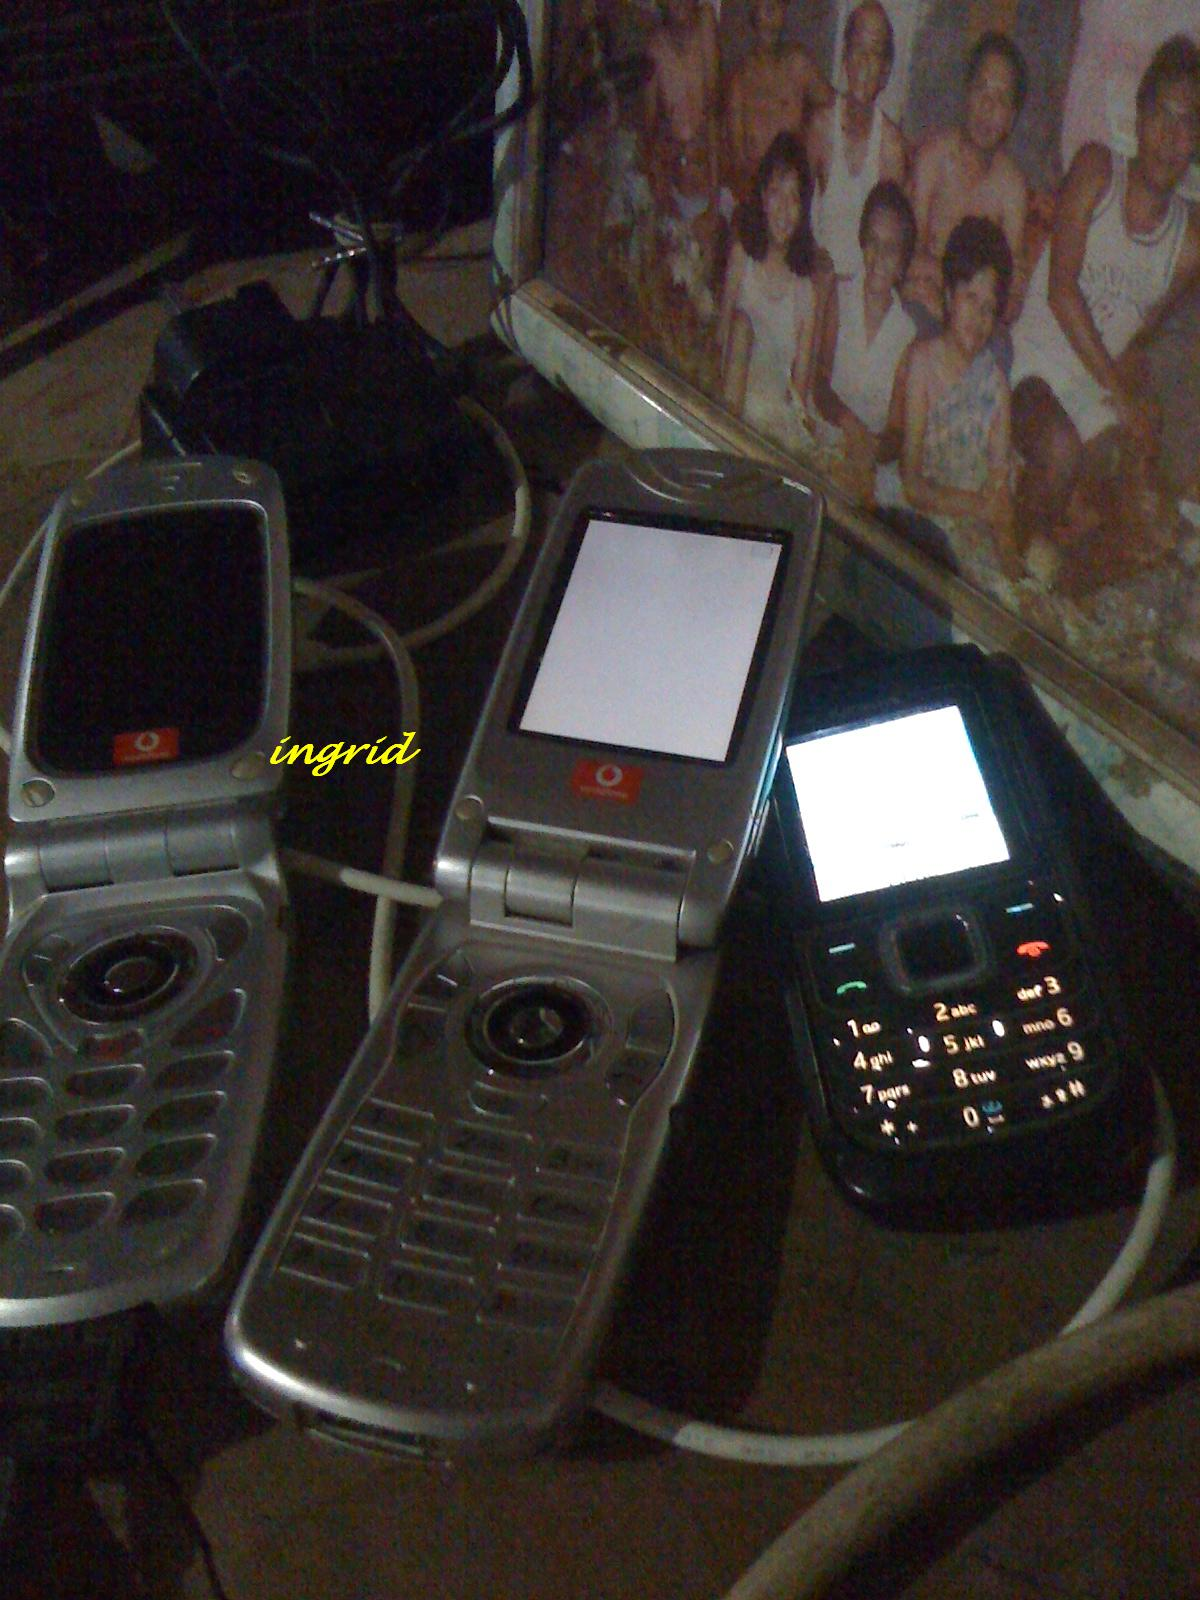 my old cell phones